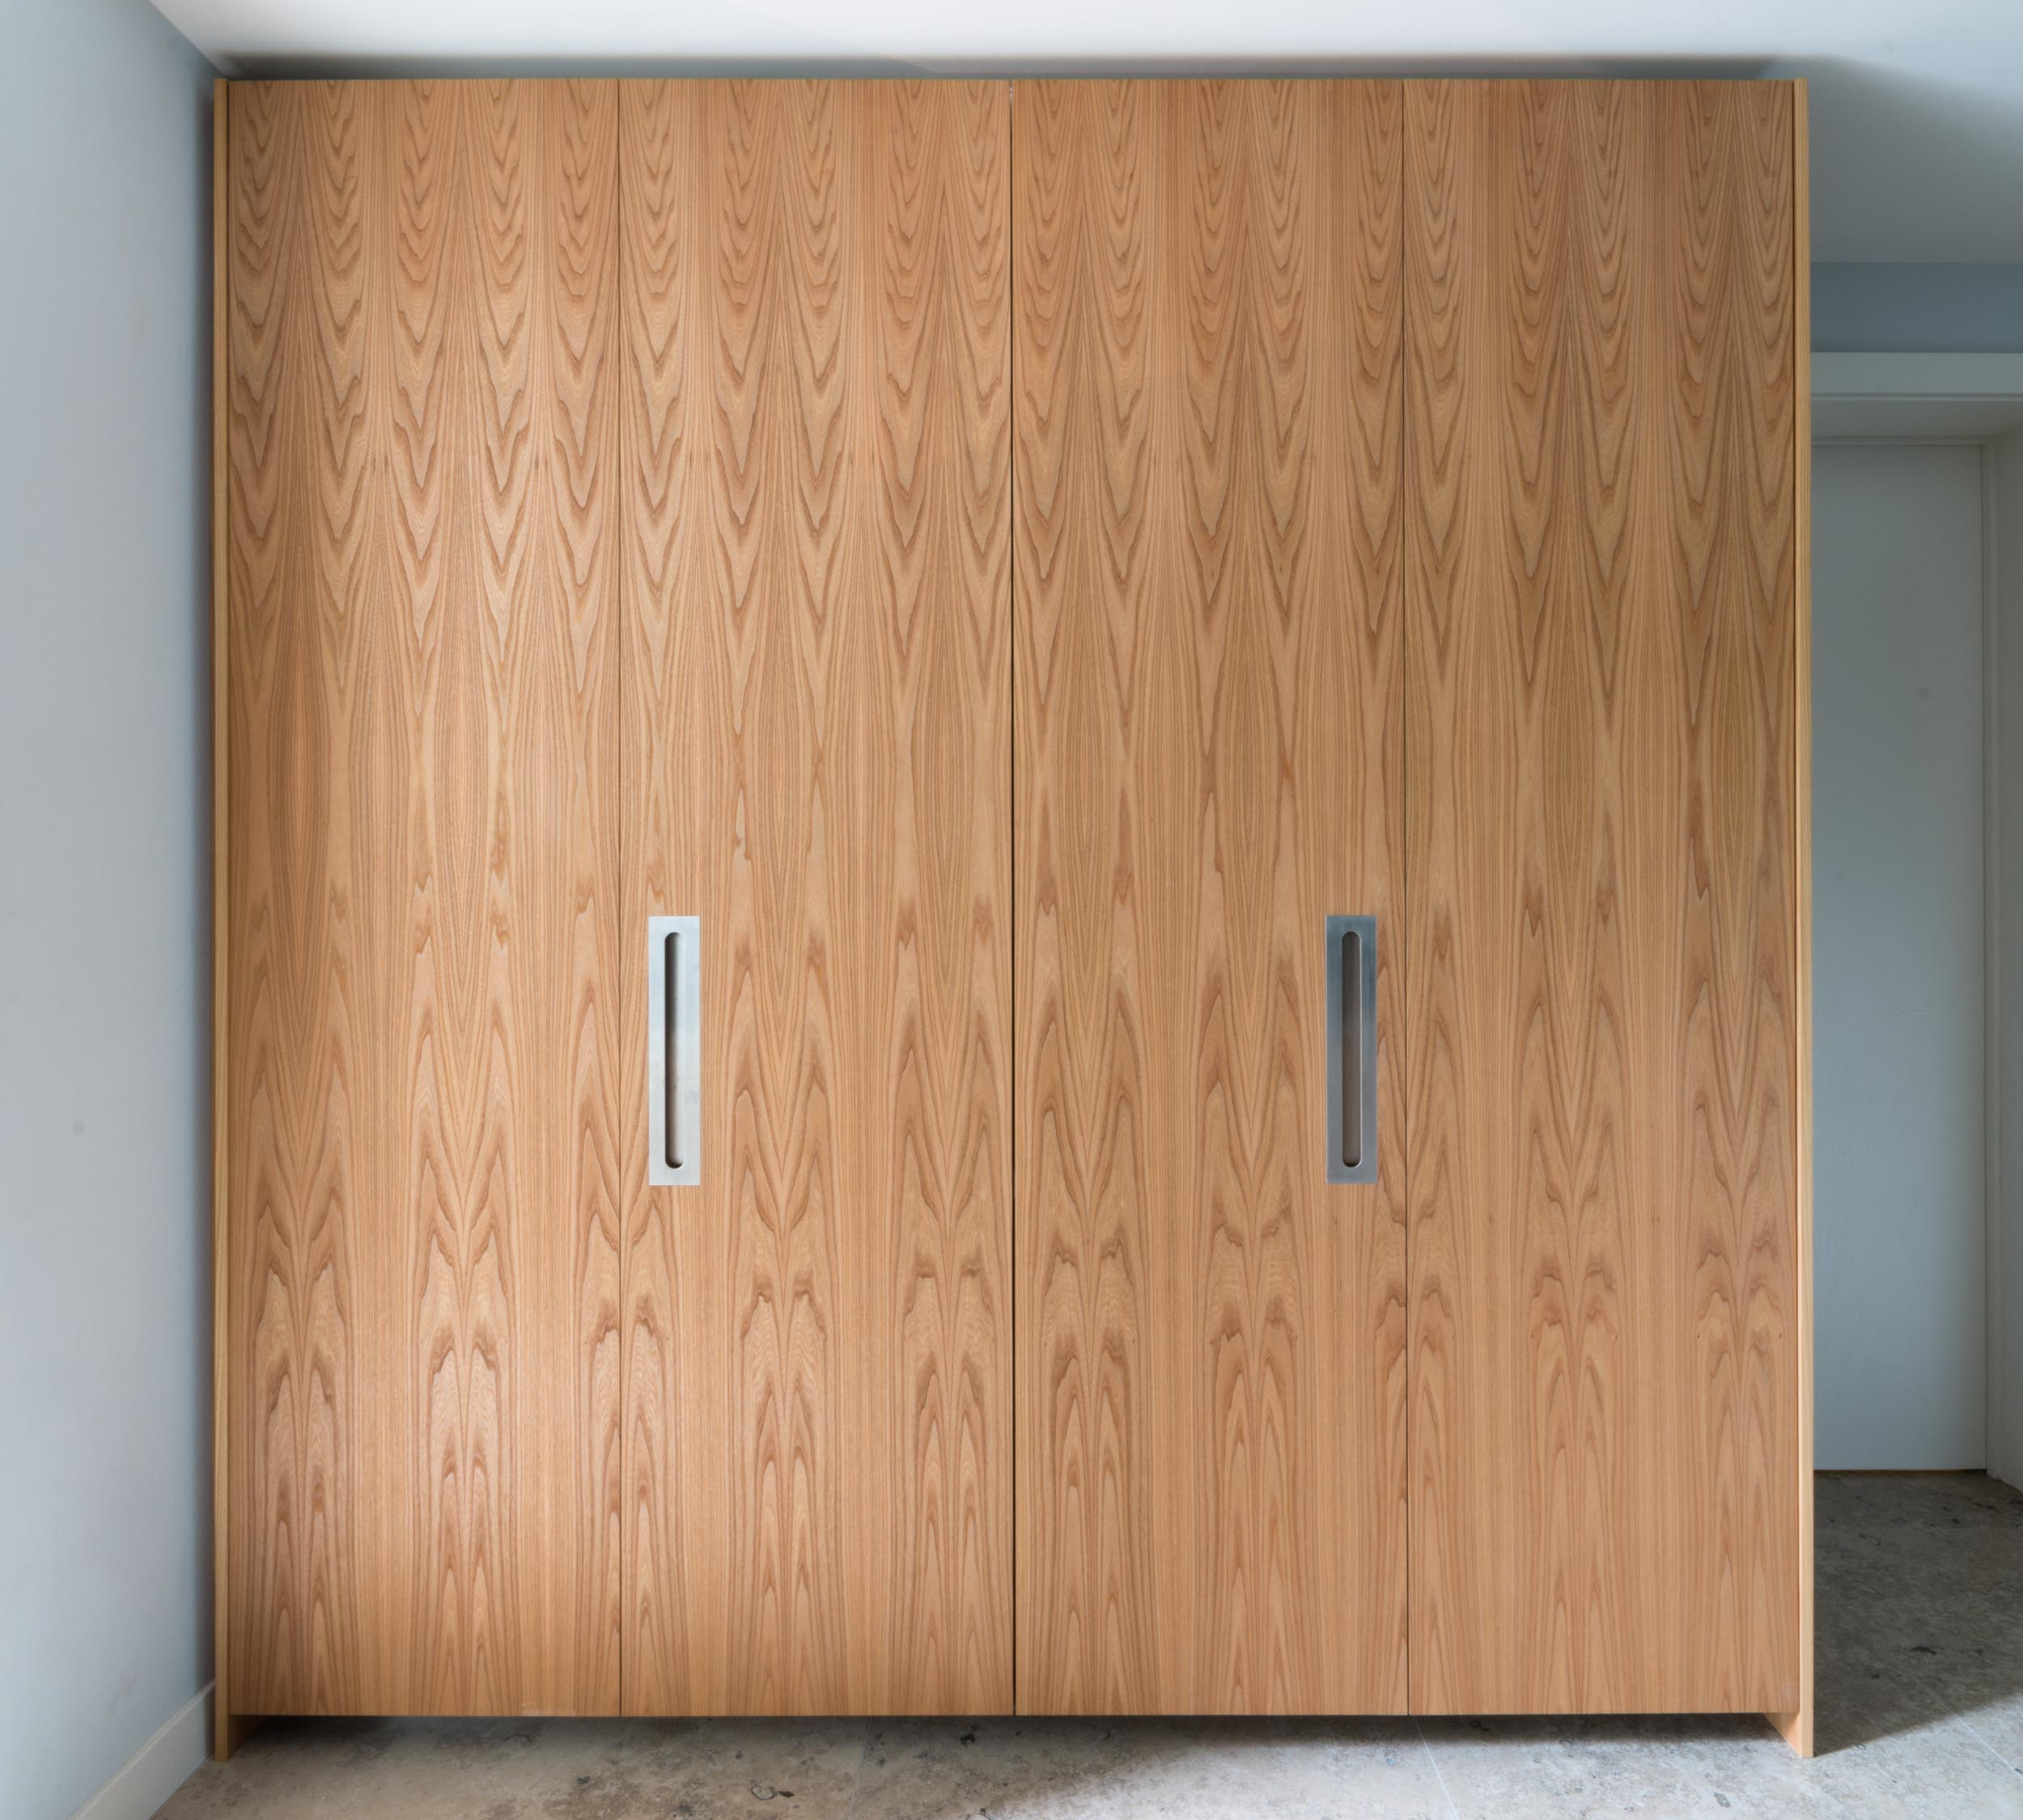 Copy of Powell Picano London - Clifton gardens bespoke kitchen custom veneered doors